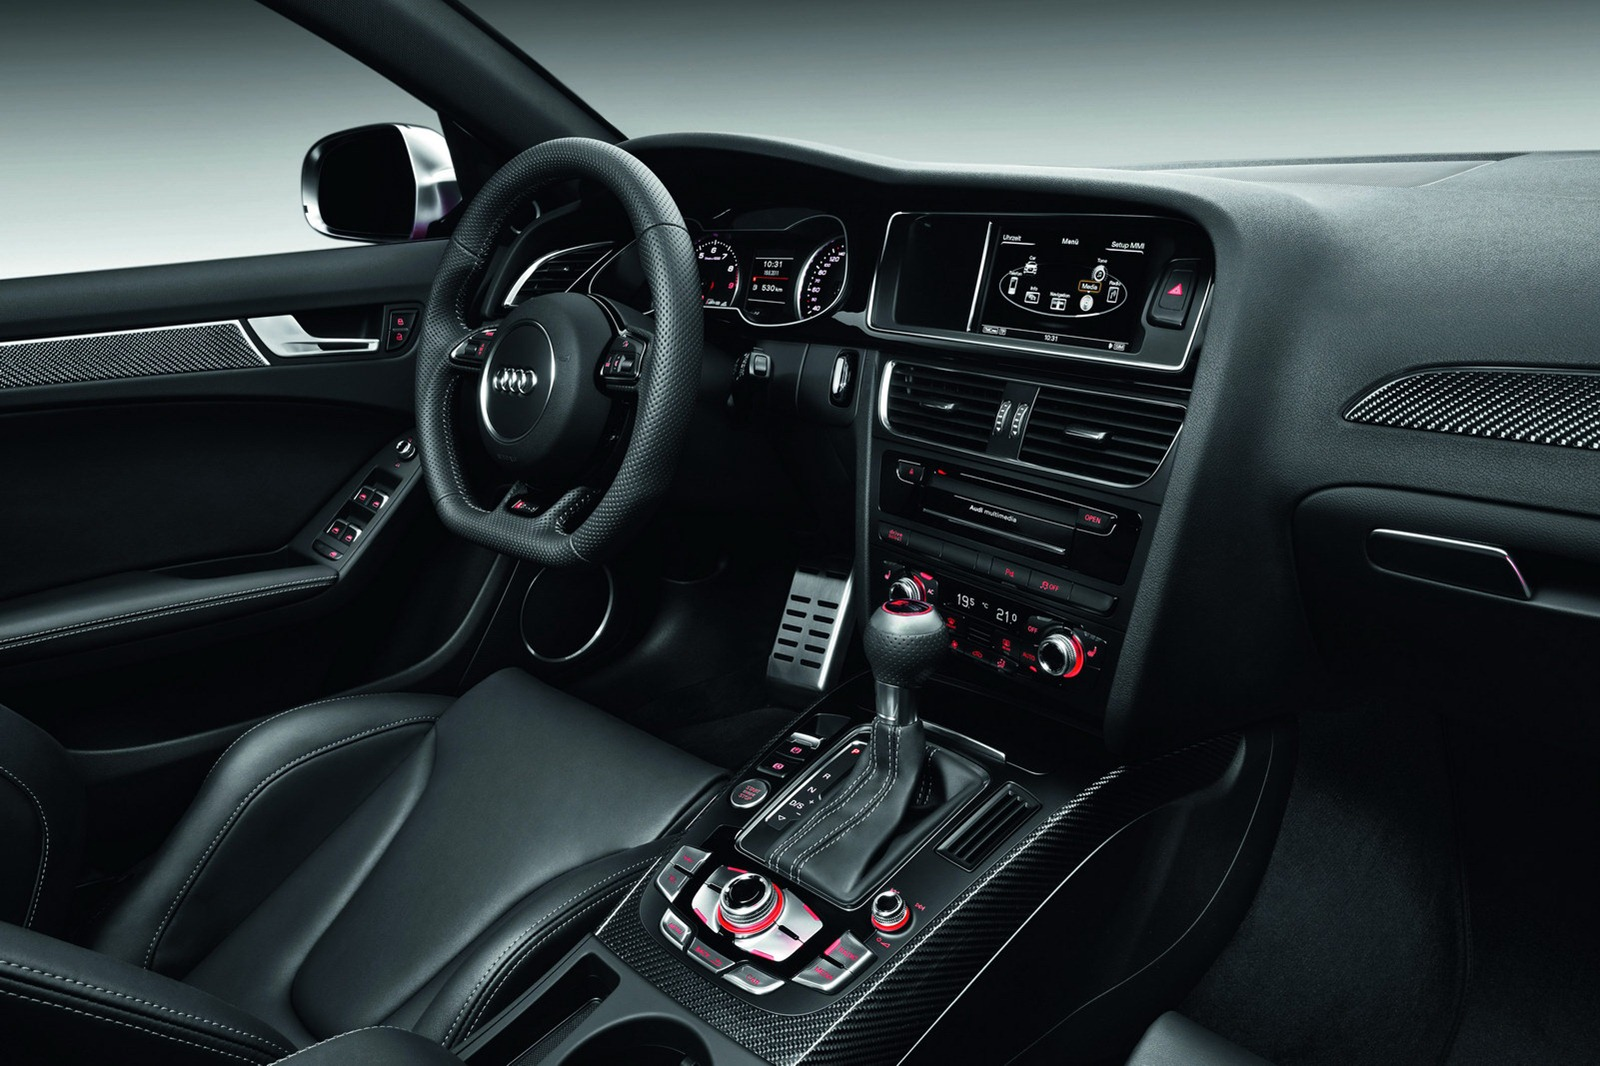 2012 Audi RS4 Avant Specs and Photos - autoevolution